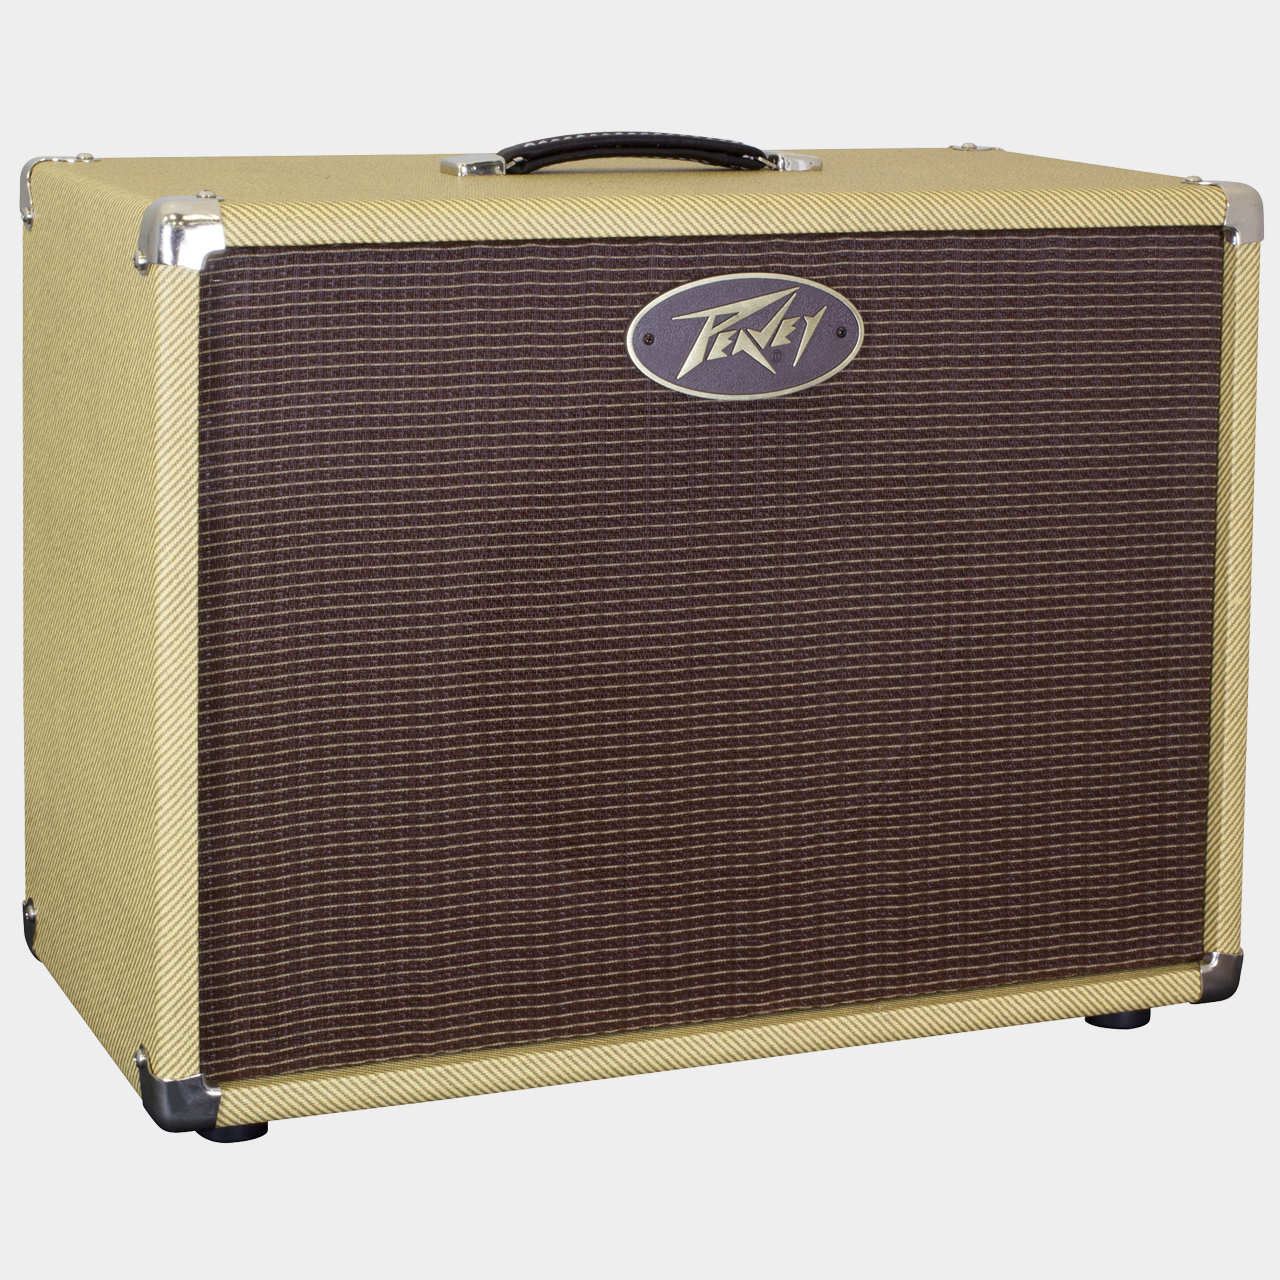 PEAVEY 112-C Classic Extension Cabinet Angle